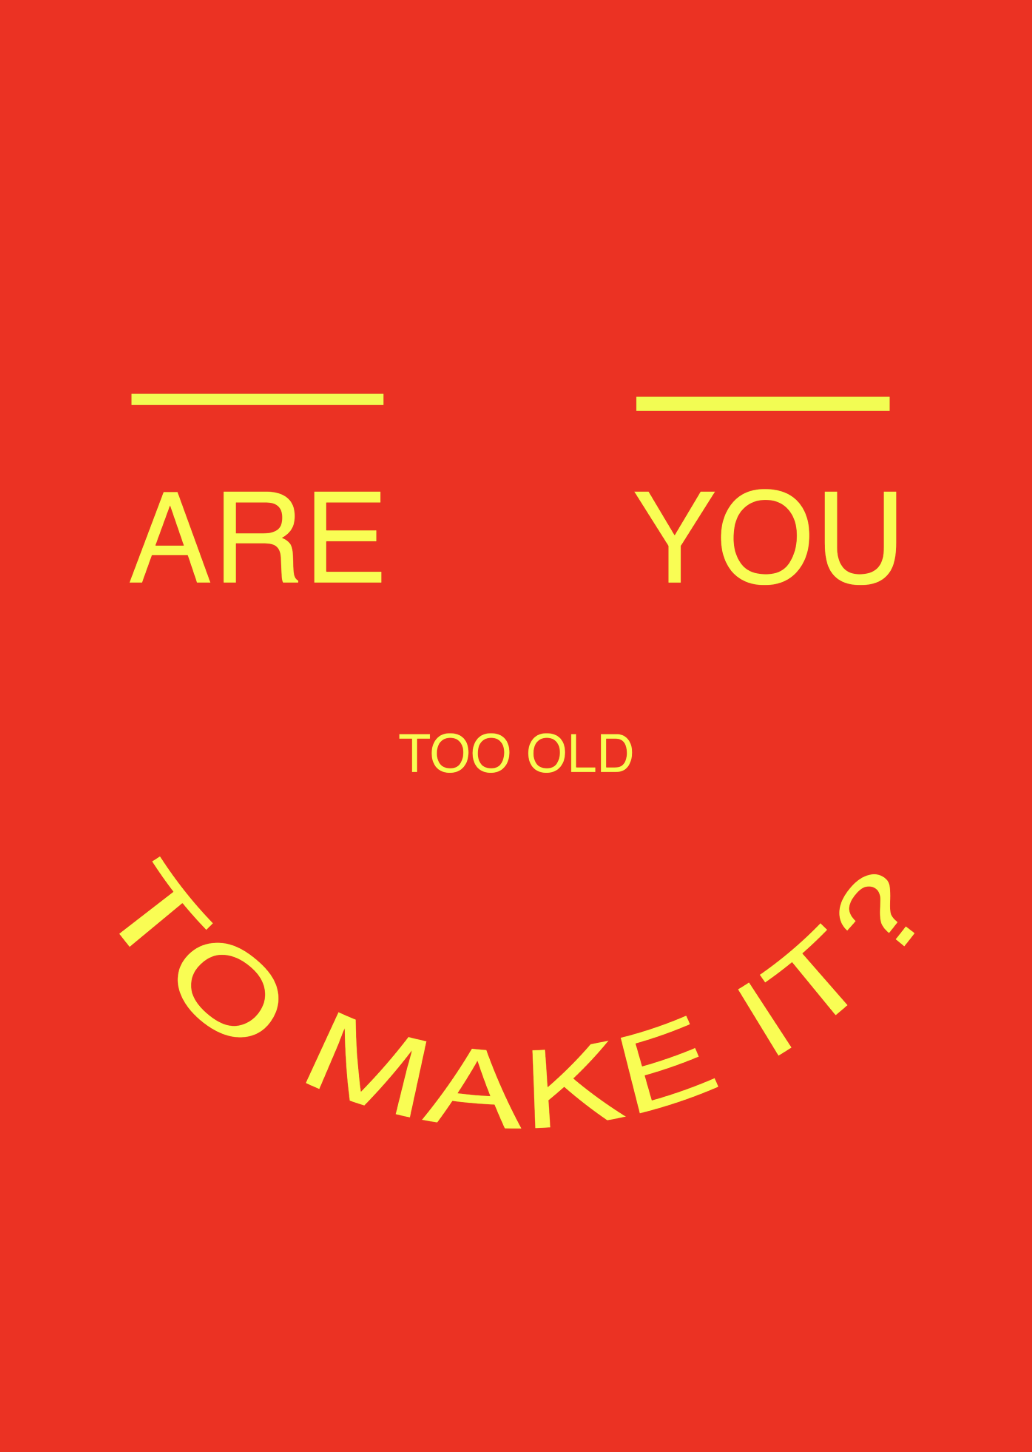 are you too old to make it in fashion?